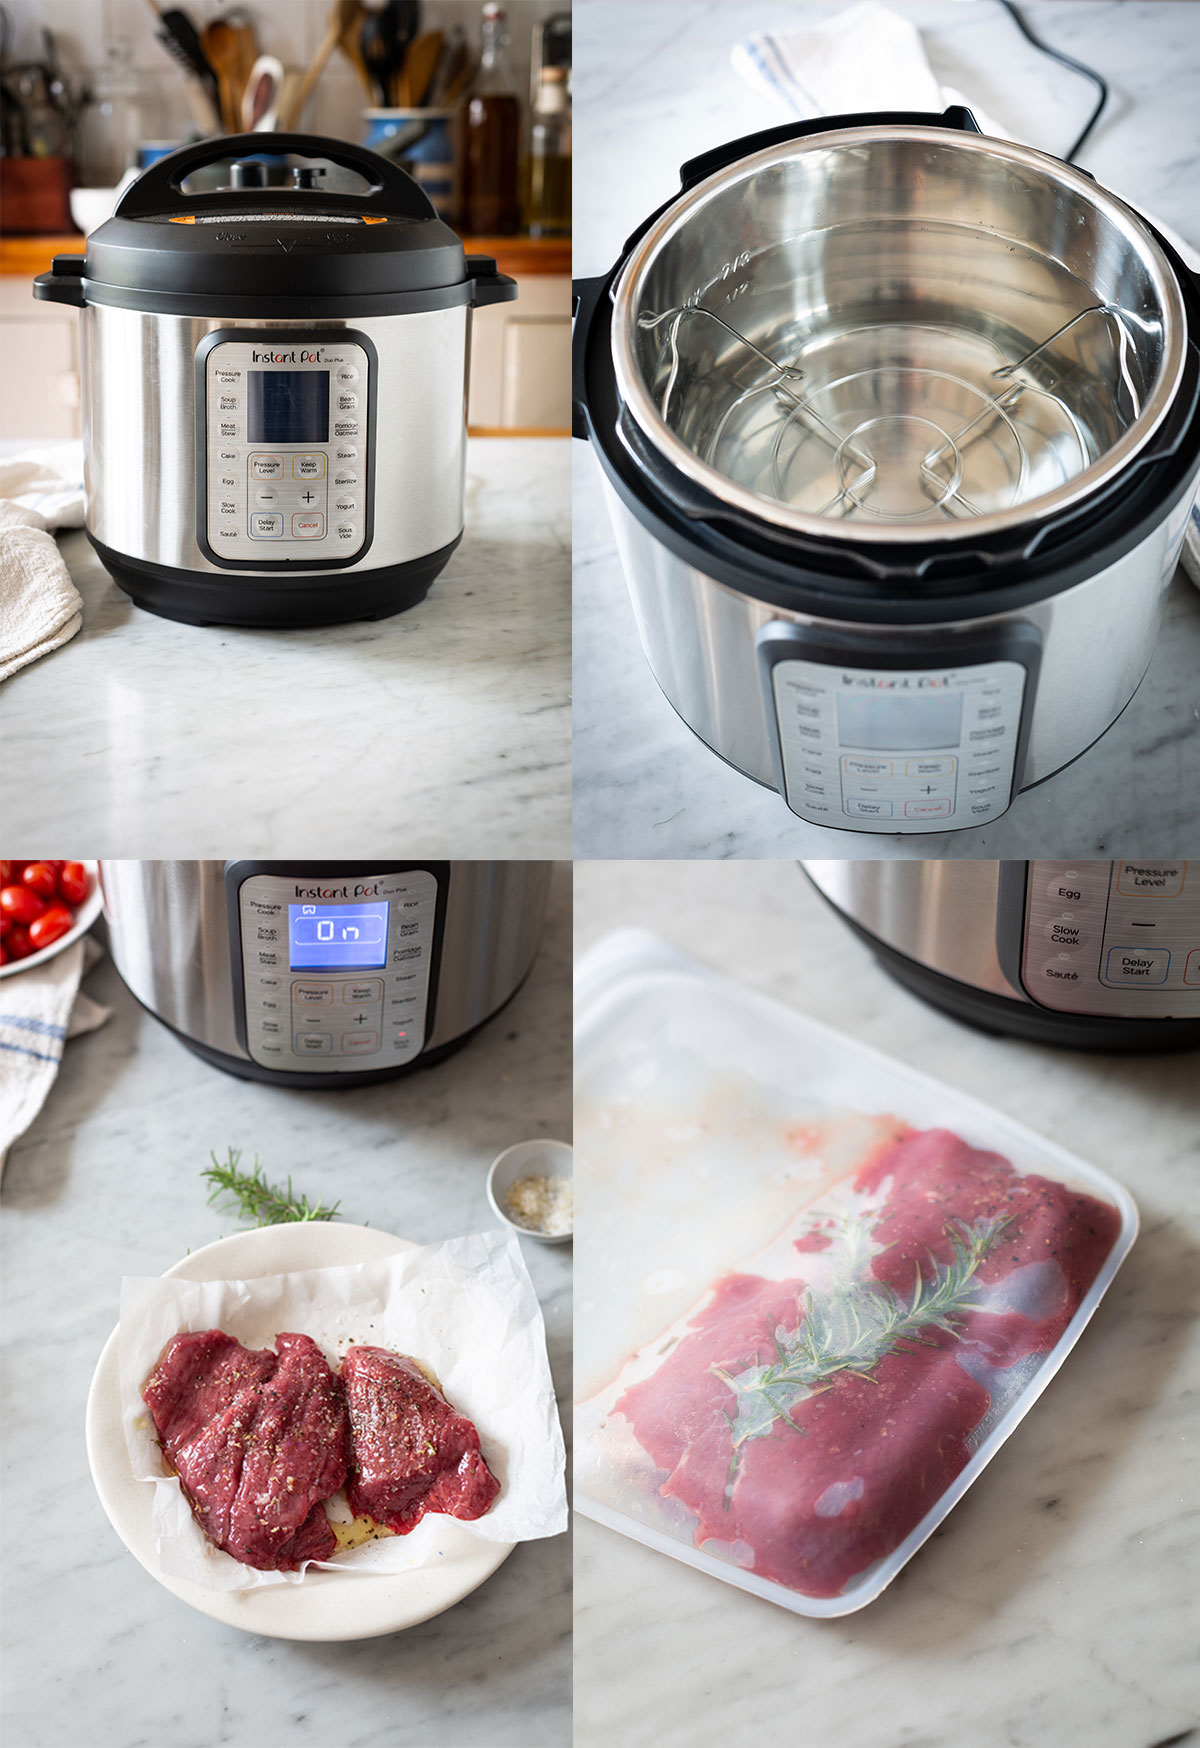 Ostrich steak tagliata recipe & How to cook is sous vide in an Instant Pot